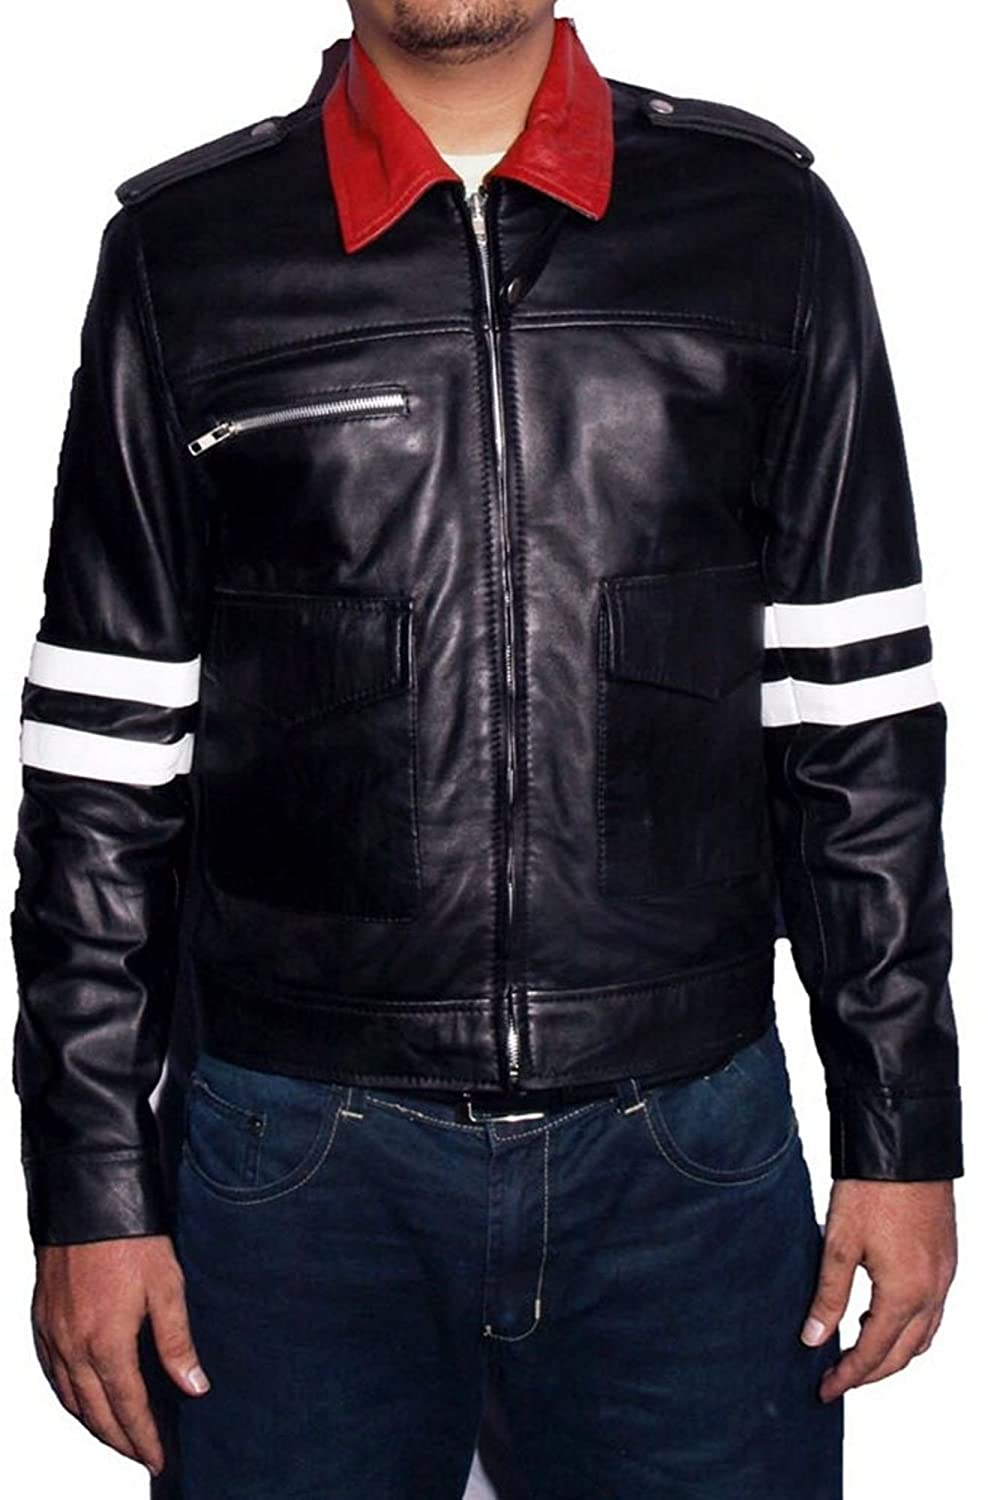 Men's Prototype Without Dragon Sheep Black Leather Jacket